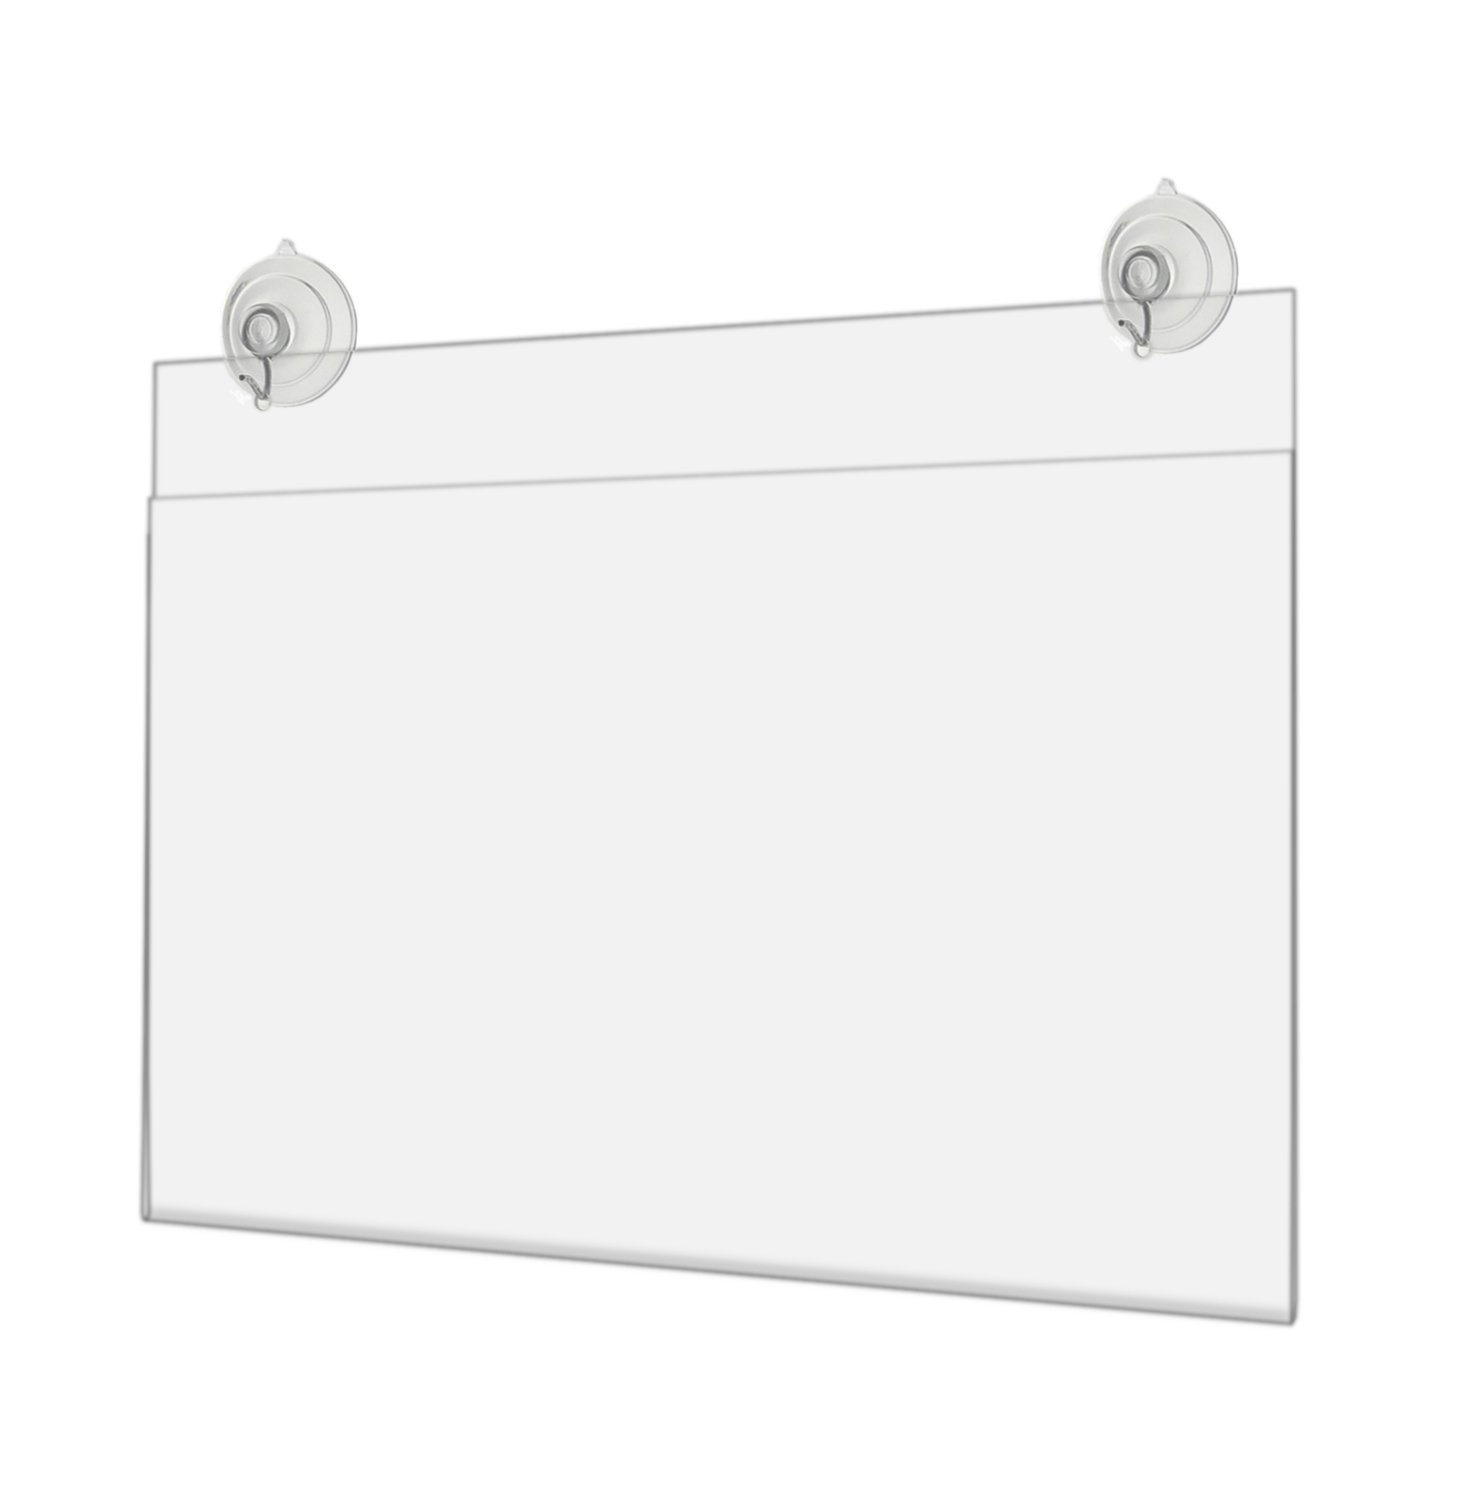 Marketing Holders Horizontal Store Front Sign Display Advertisement Flyer Frame with Suction Cups and Hanging Hooks 14''w x 8.5''h Lot of 4 by Marketing Holders